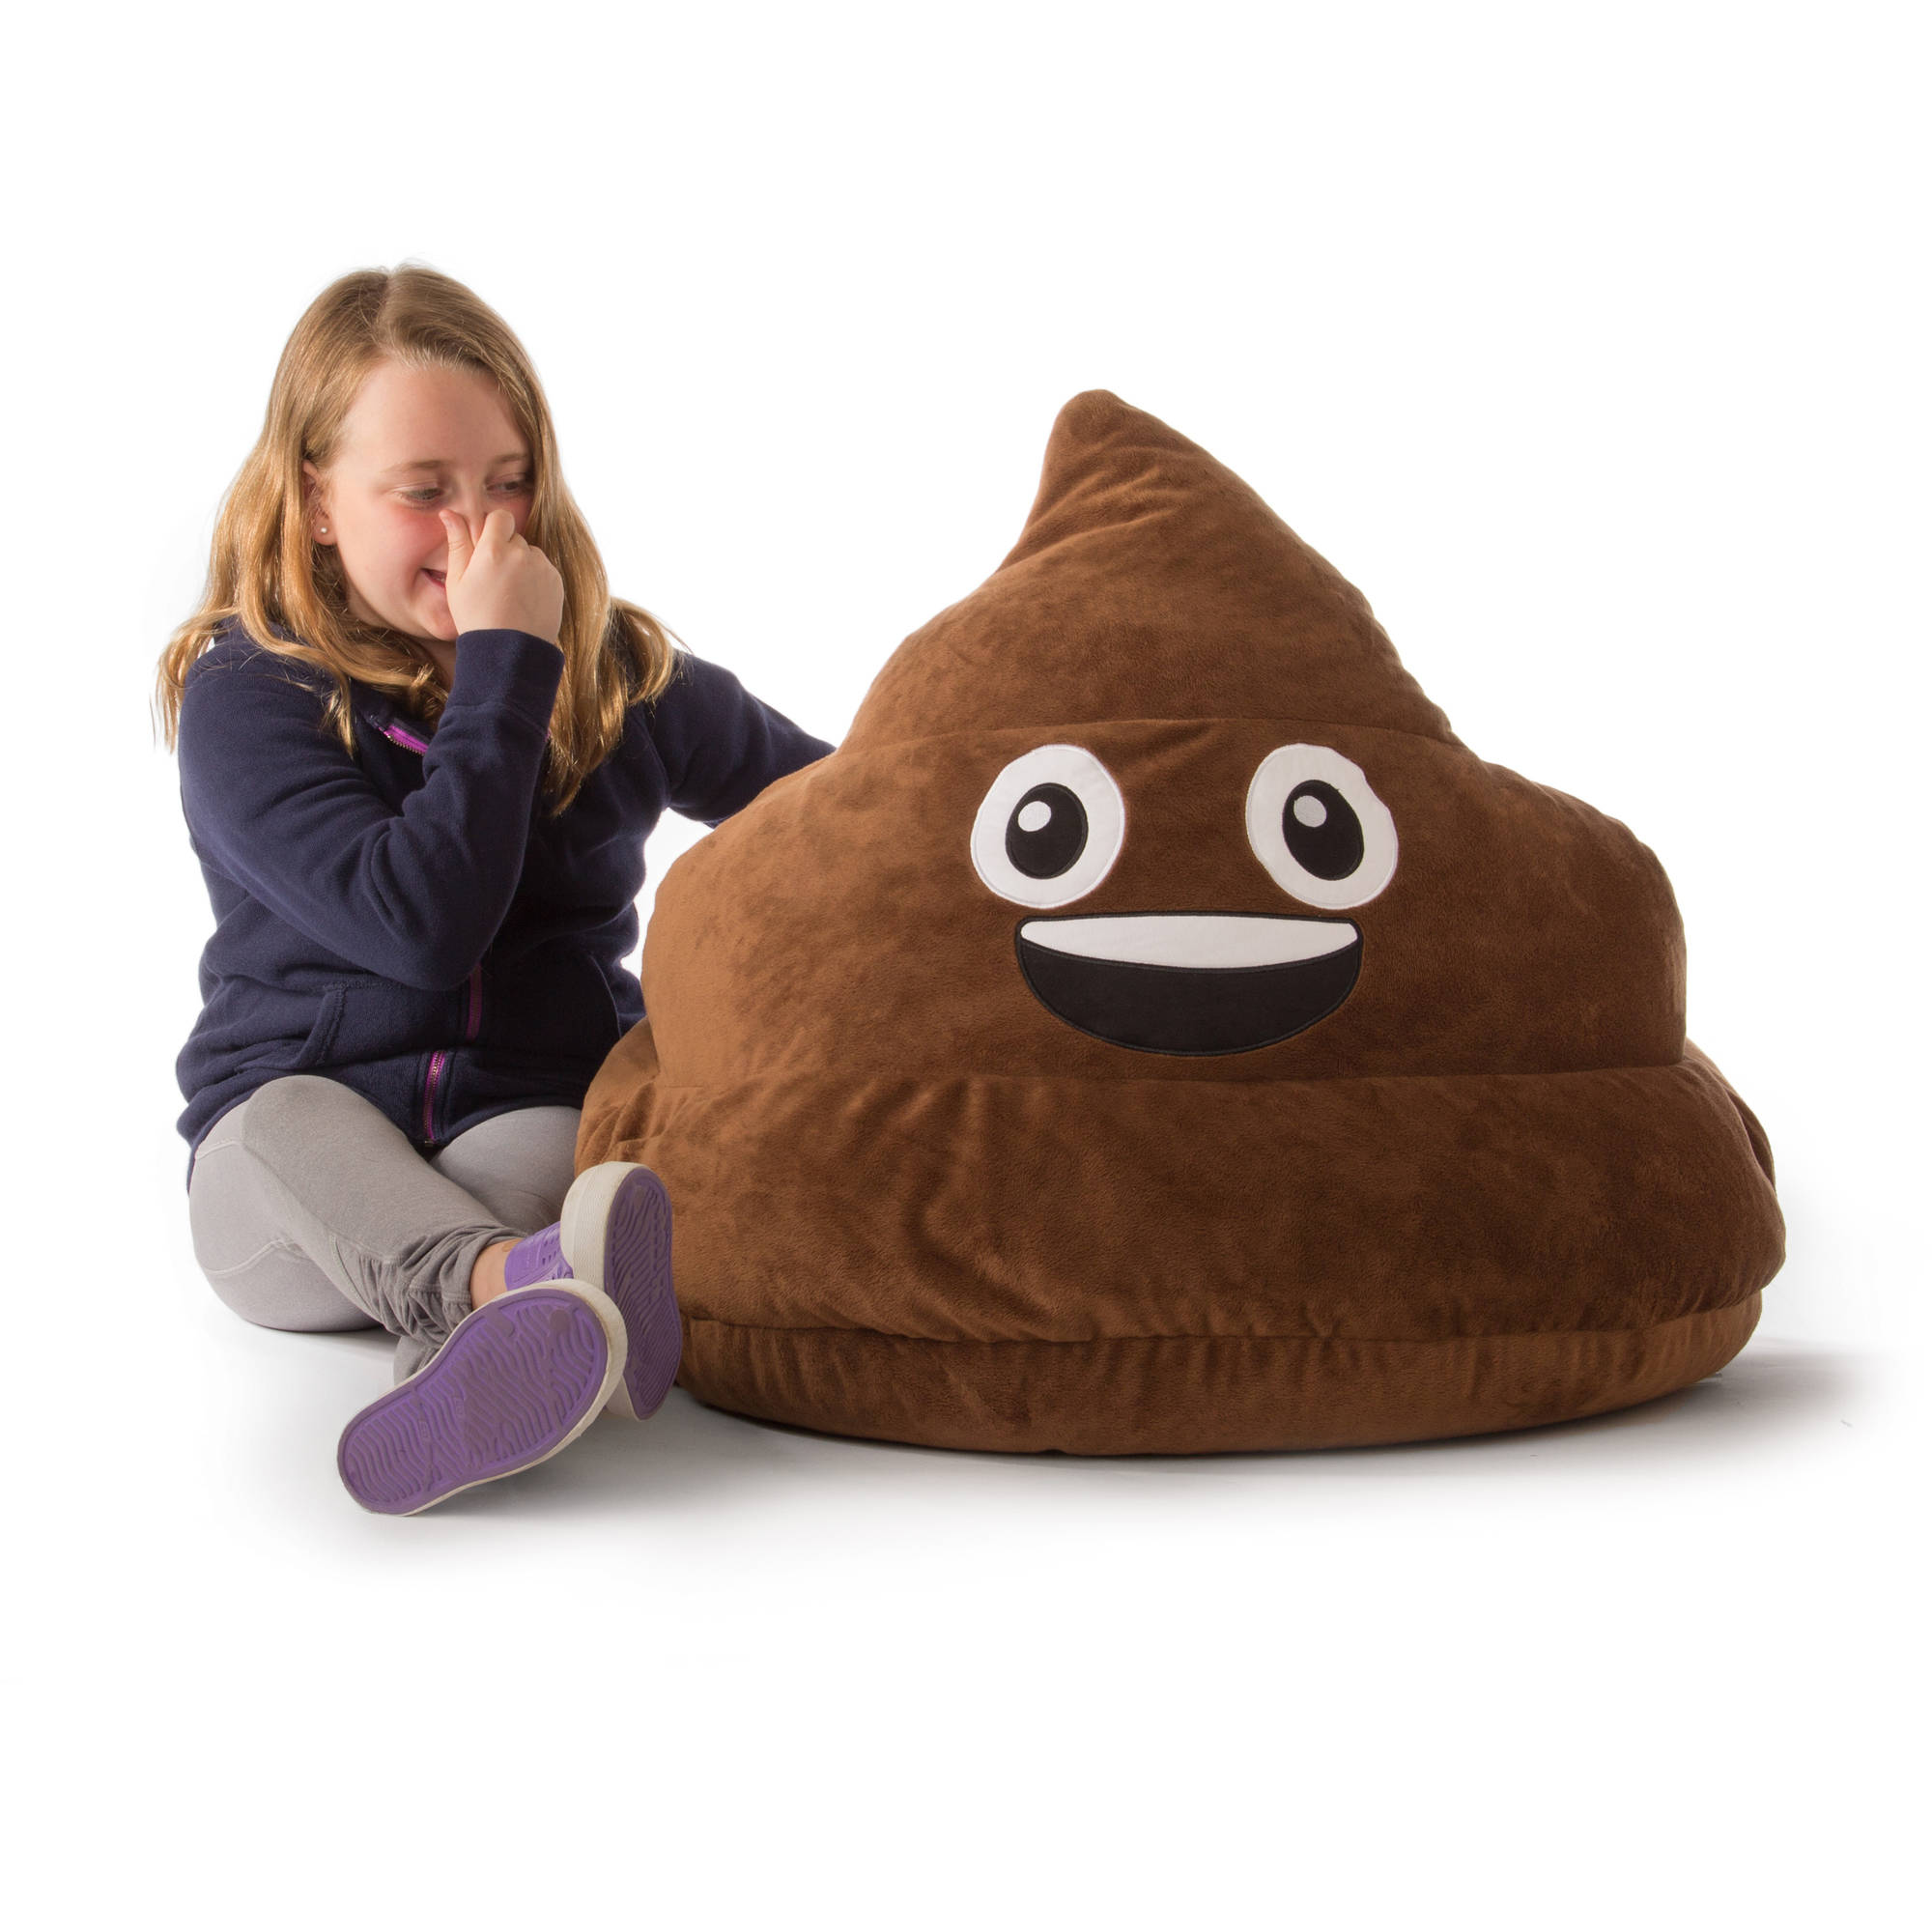 Emoji Emoticon Bean Bag Soft Chair Comfortable Sofa Seat  : 2cfb3ccf 7e75 467d bd17 f18ac7c2126e13f3841e65ba2d53c34770b7699f8e98d from www.ebay.com size 2000 x 2000 jpeg 223kB